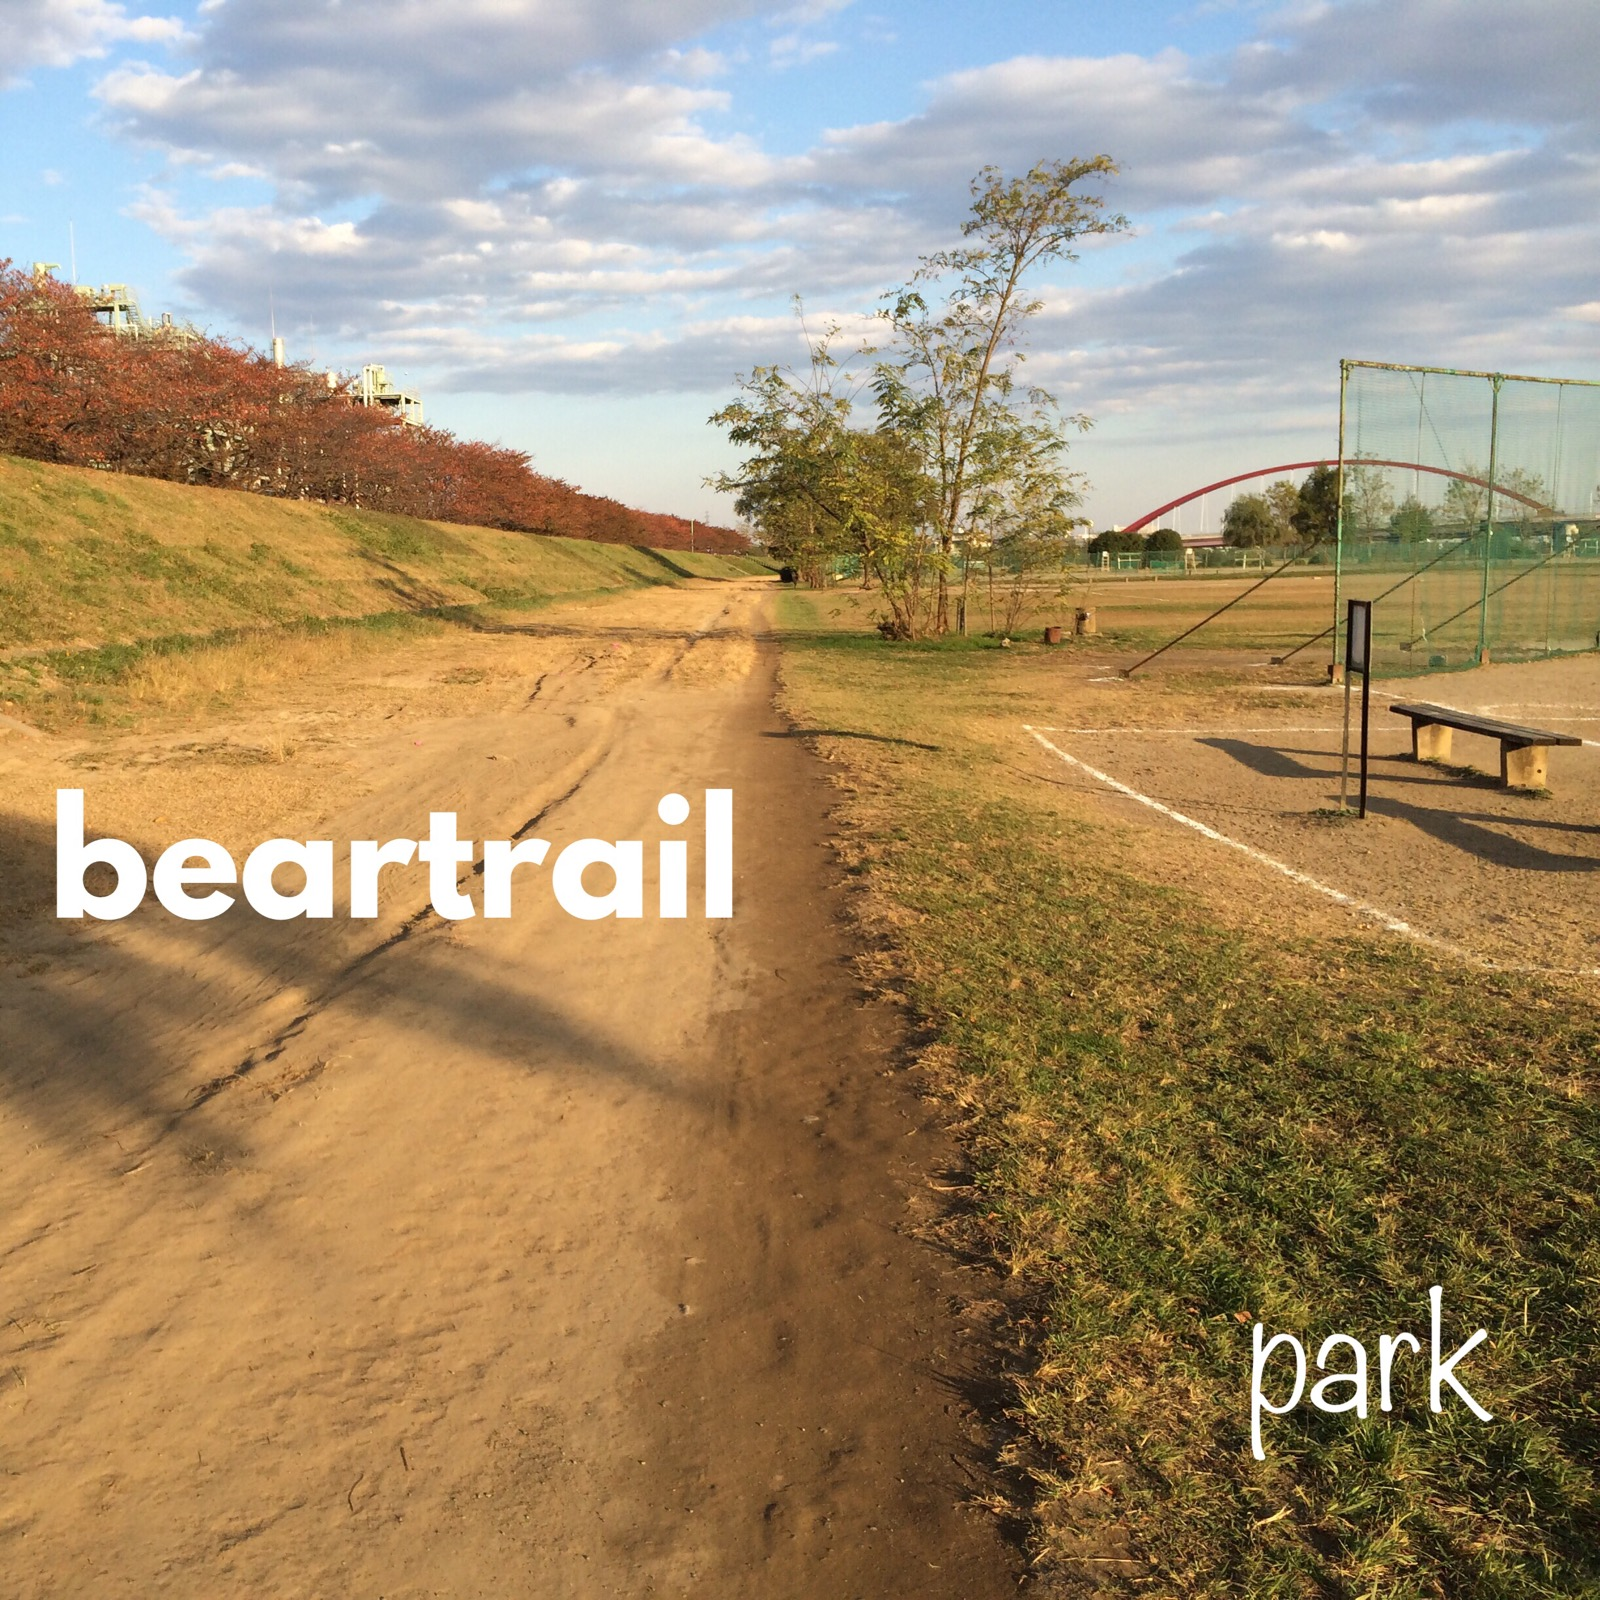 park_beartrail